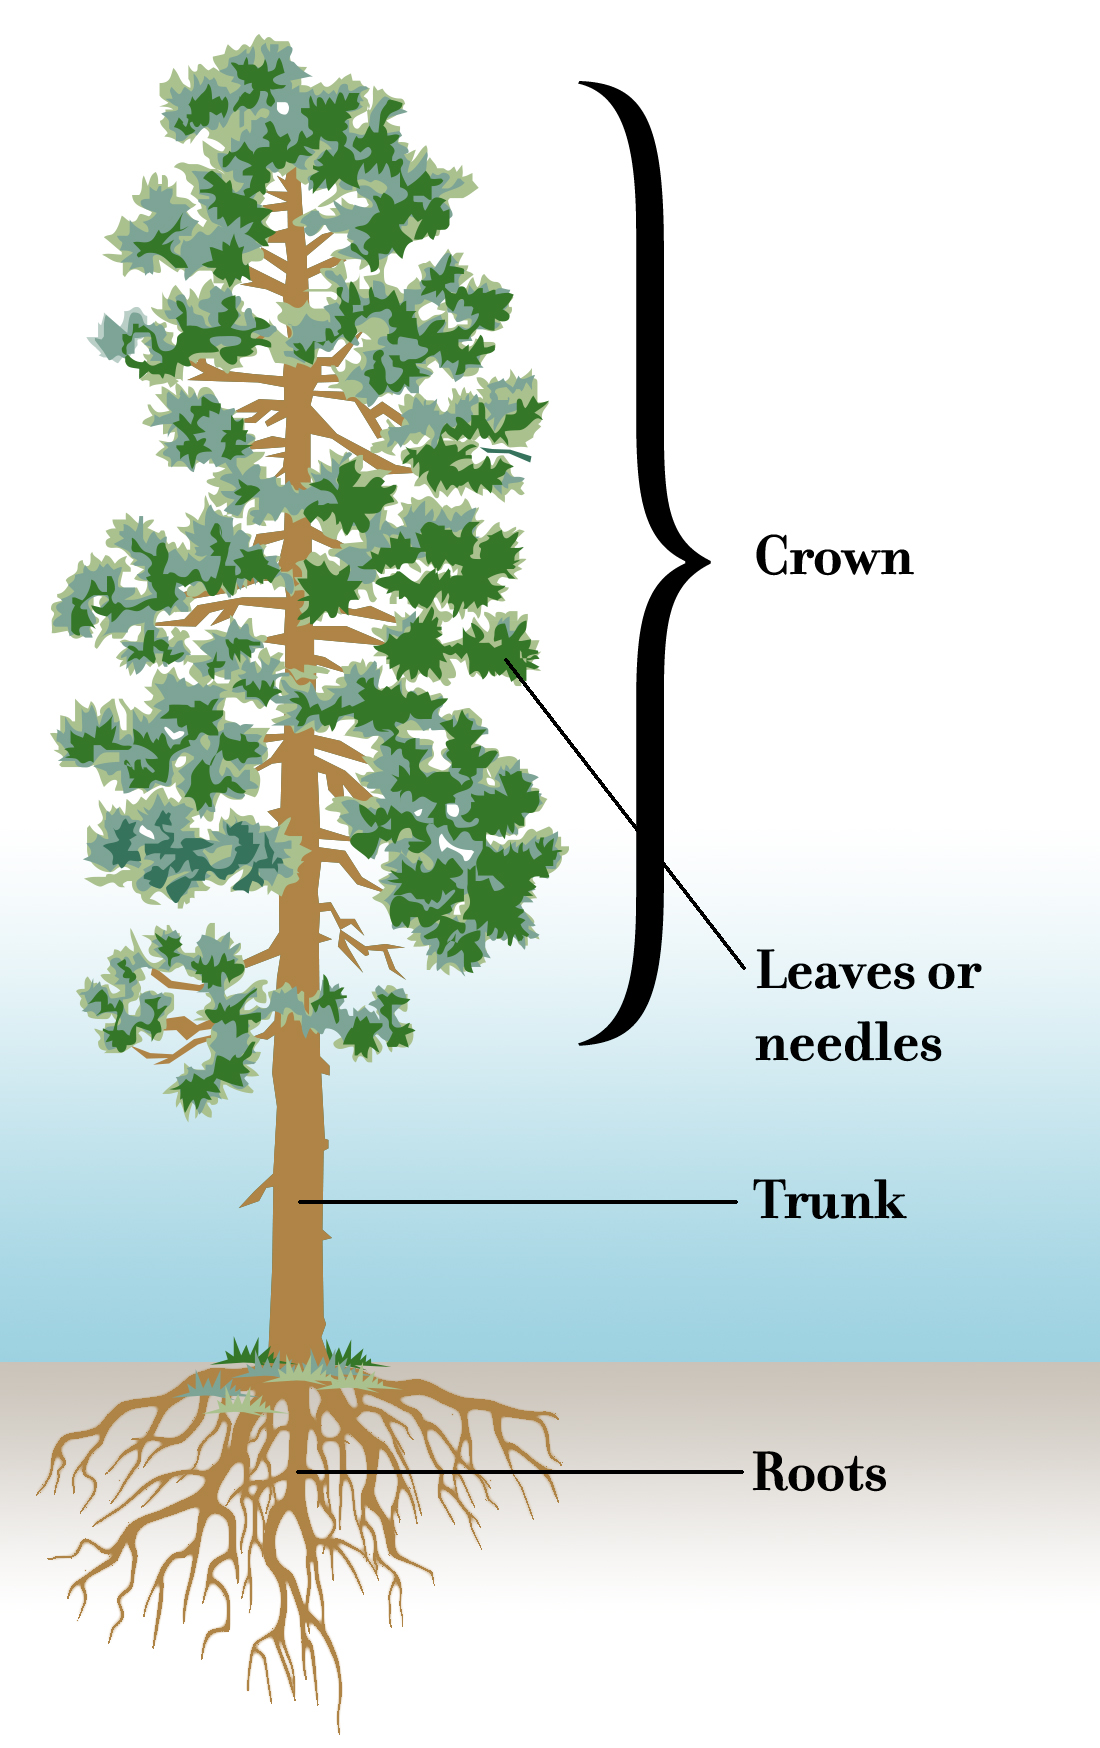 Tree biology oregonforests diagram of a tree labeling its parts pooptronica